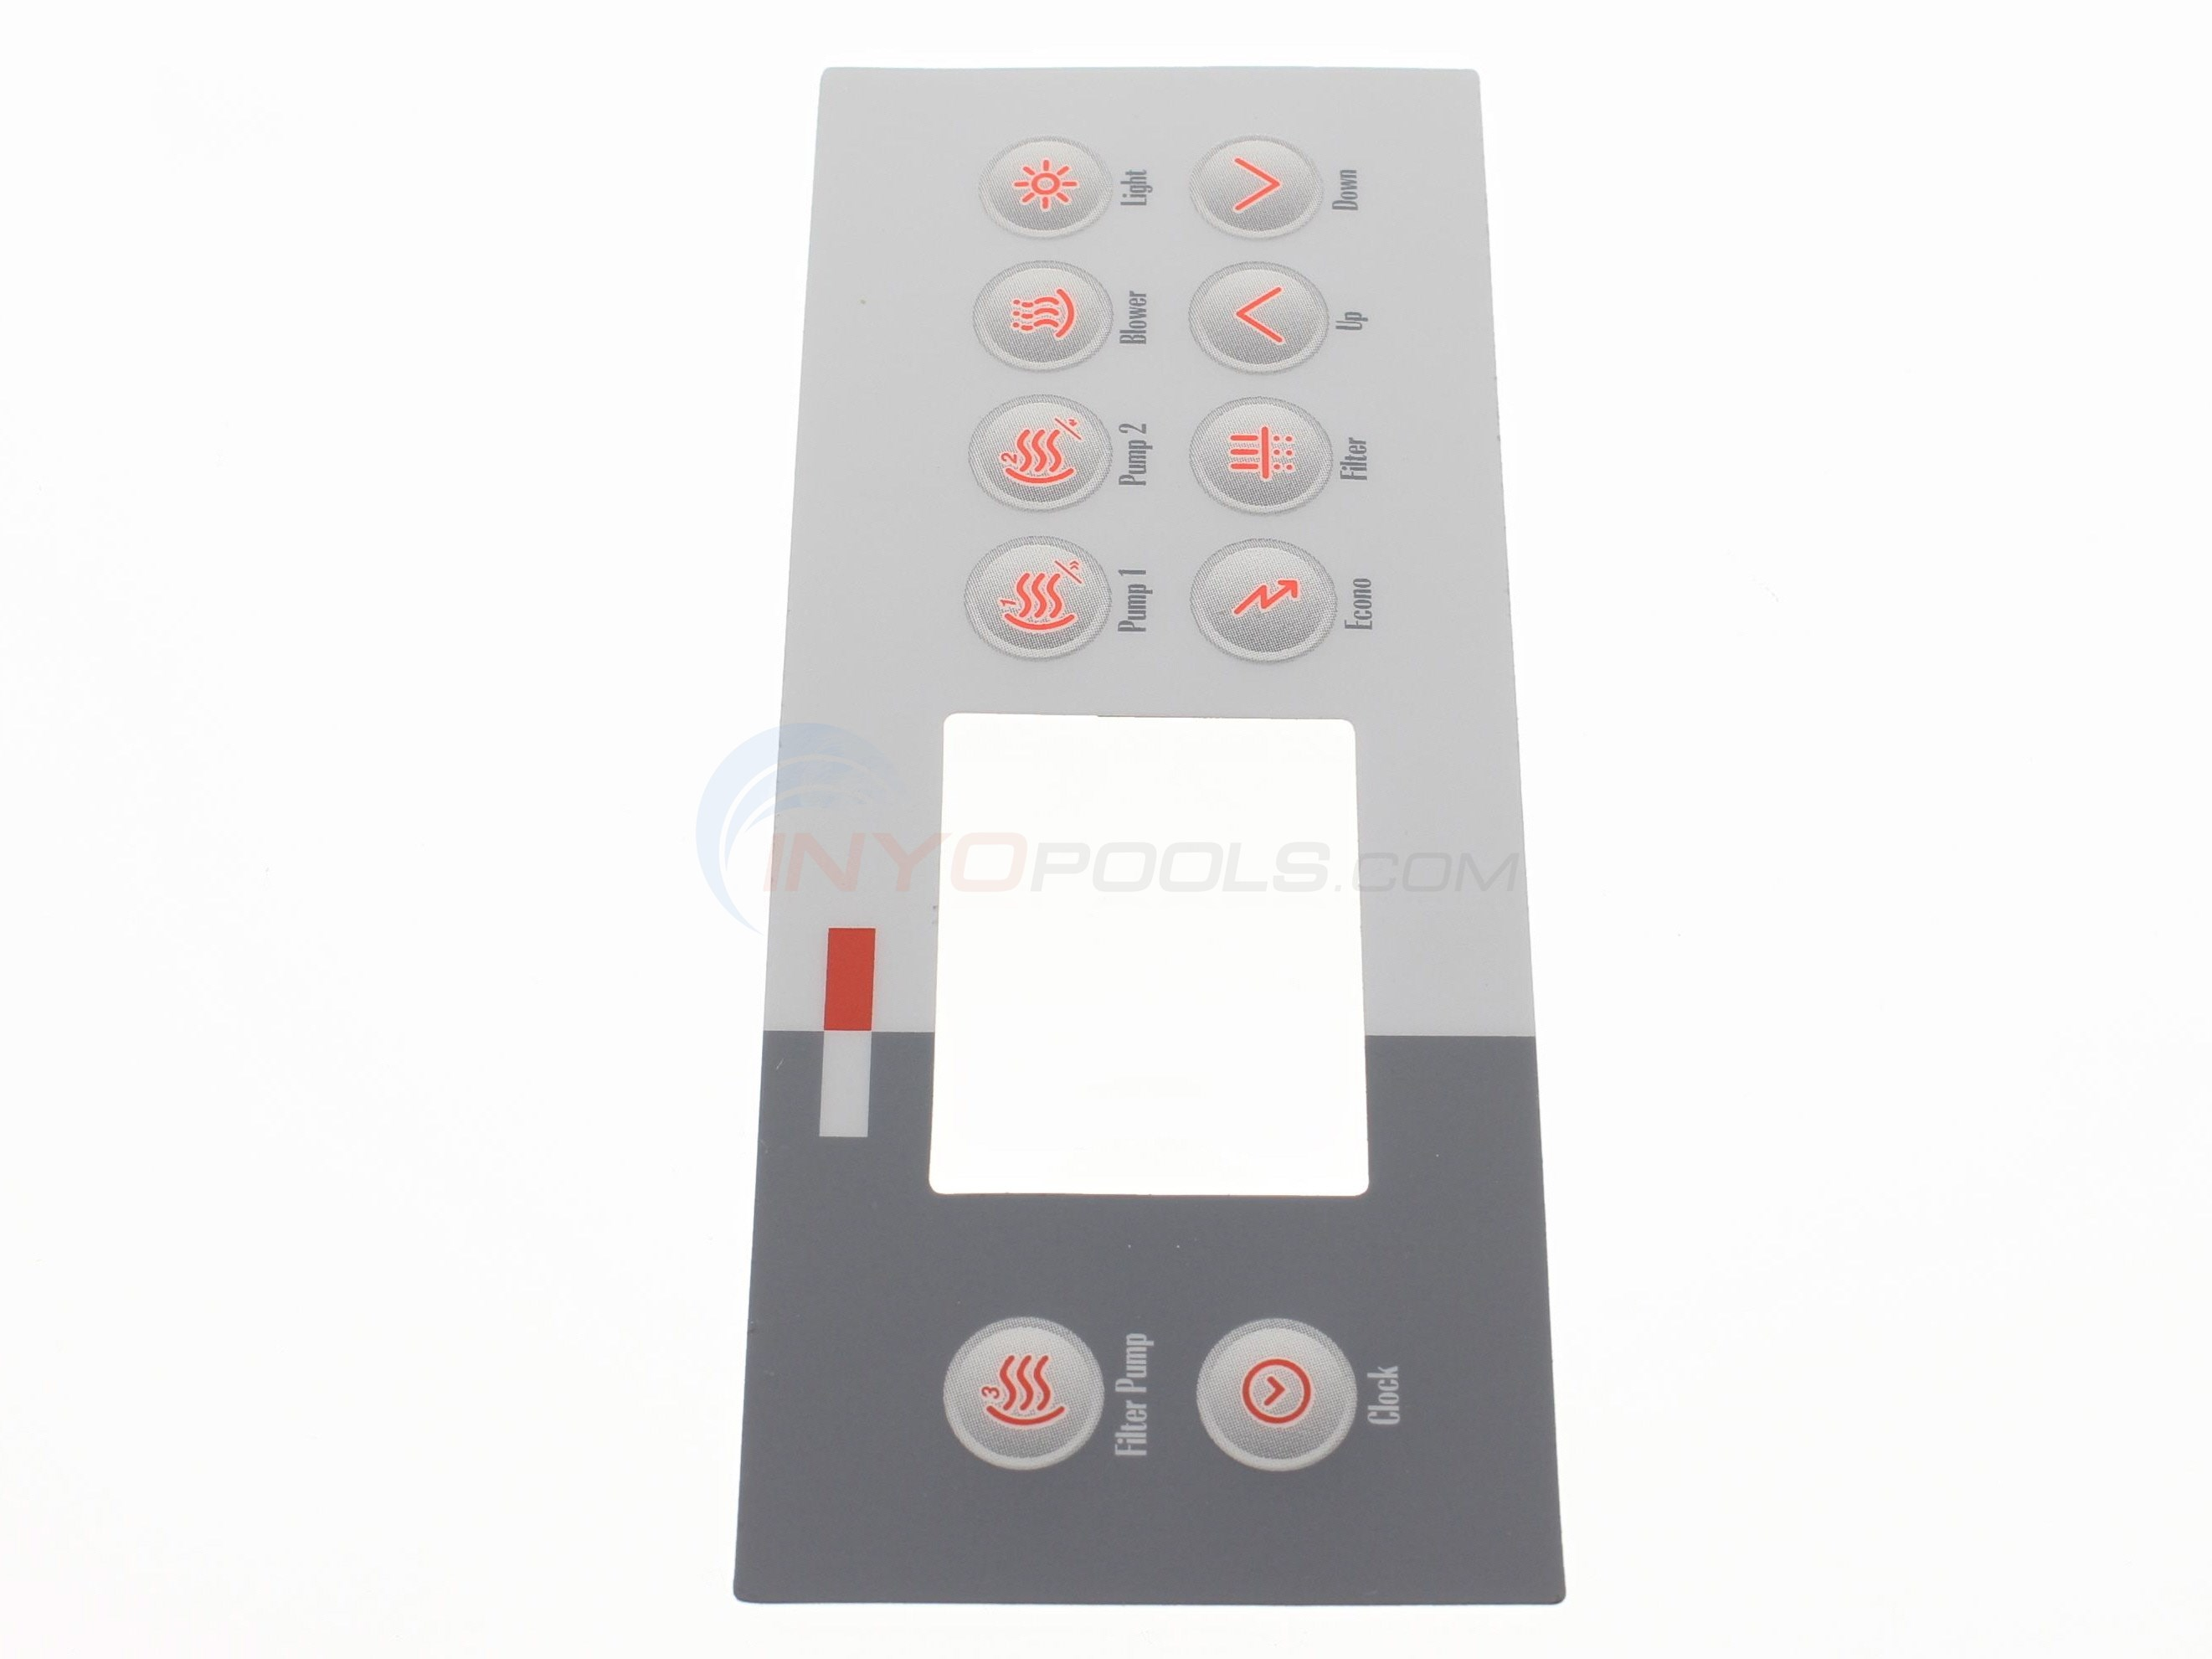 Label,TSC-4(10-key)Filt Pmp,Clock,P1,P2,Bl,Lt,Eco,Filt,Up/Dn (9916-100761)